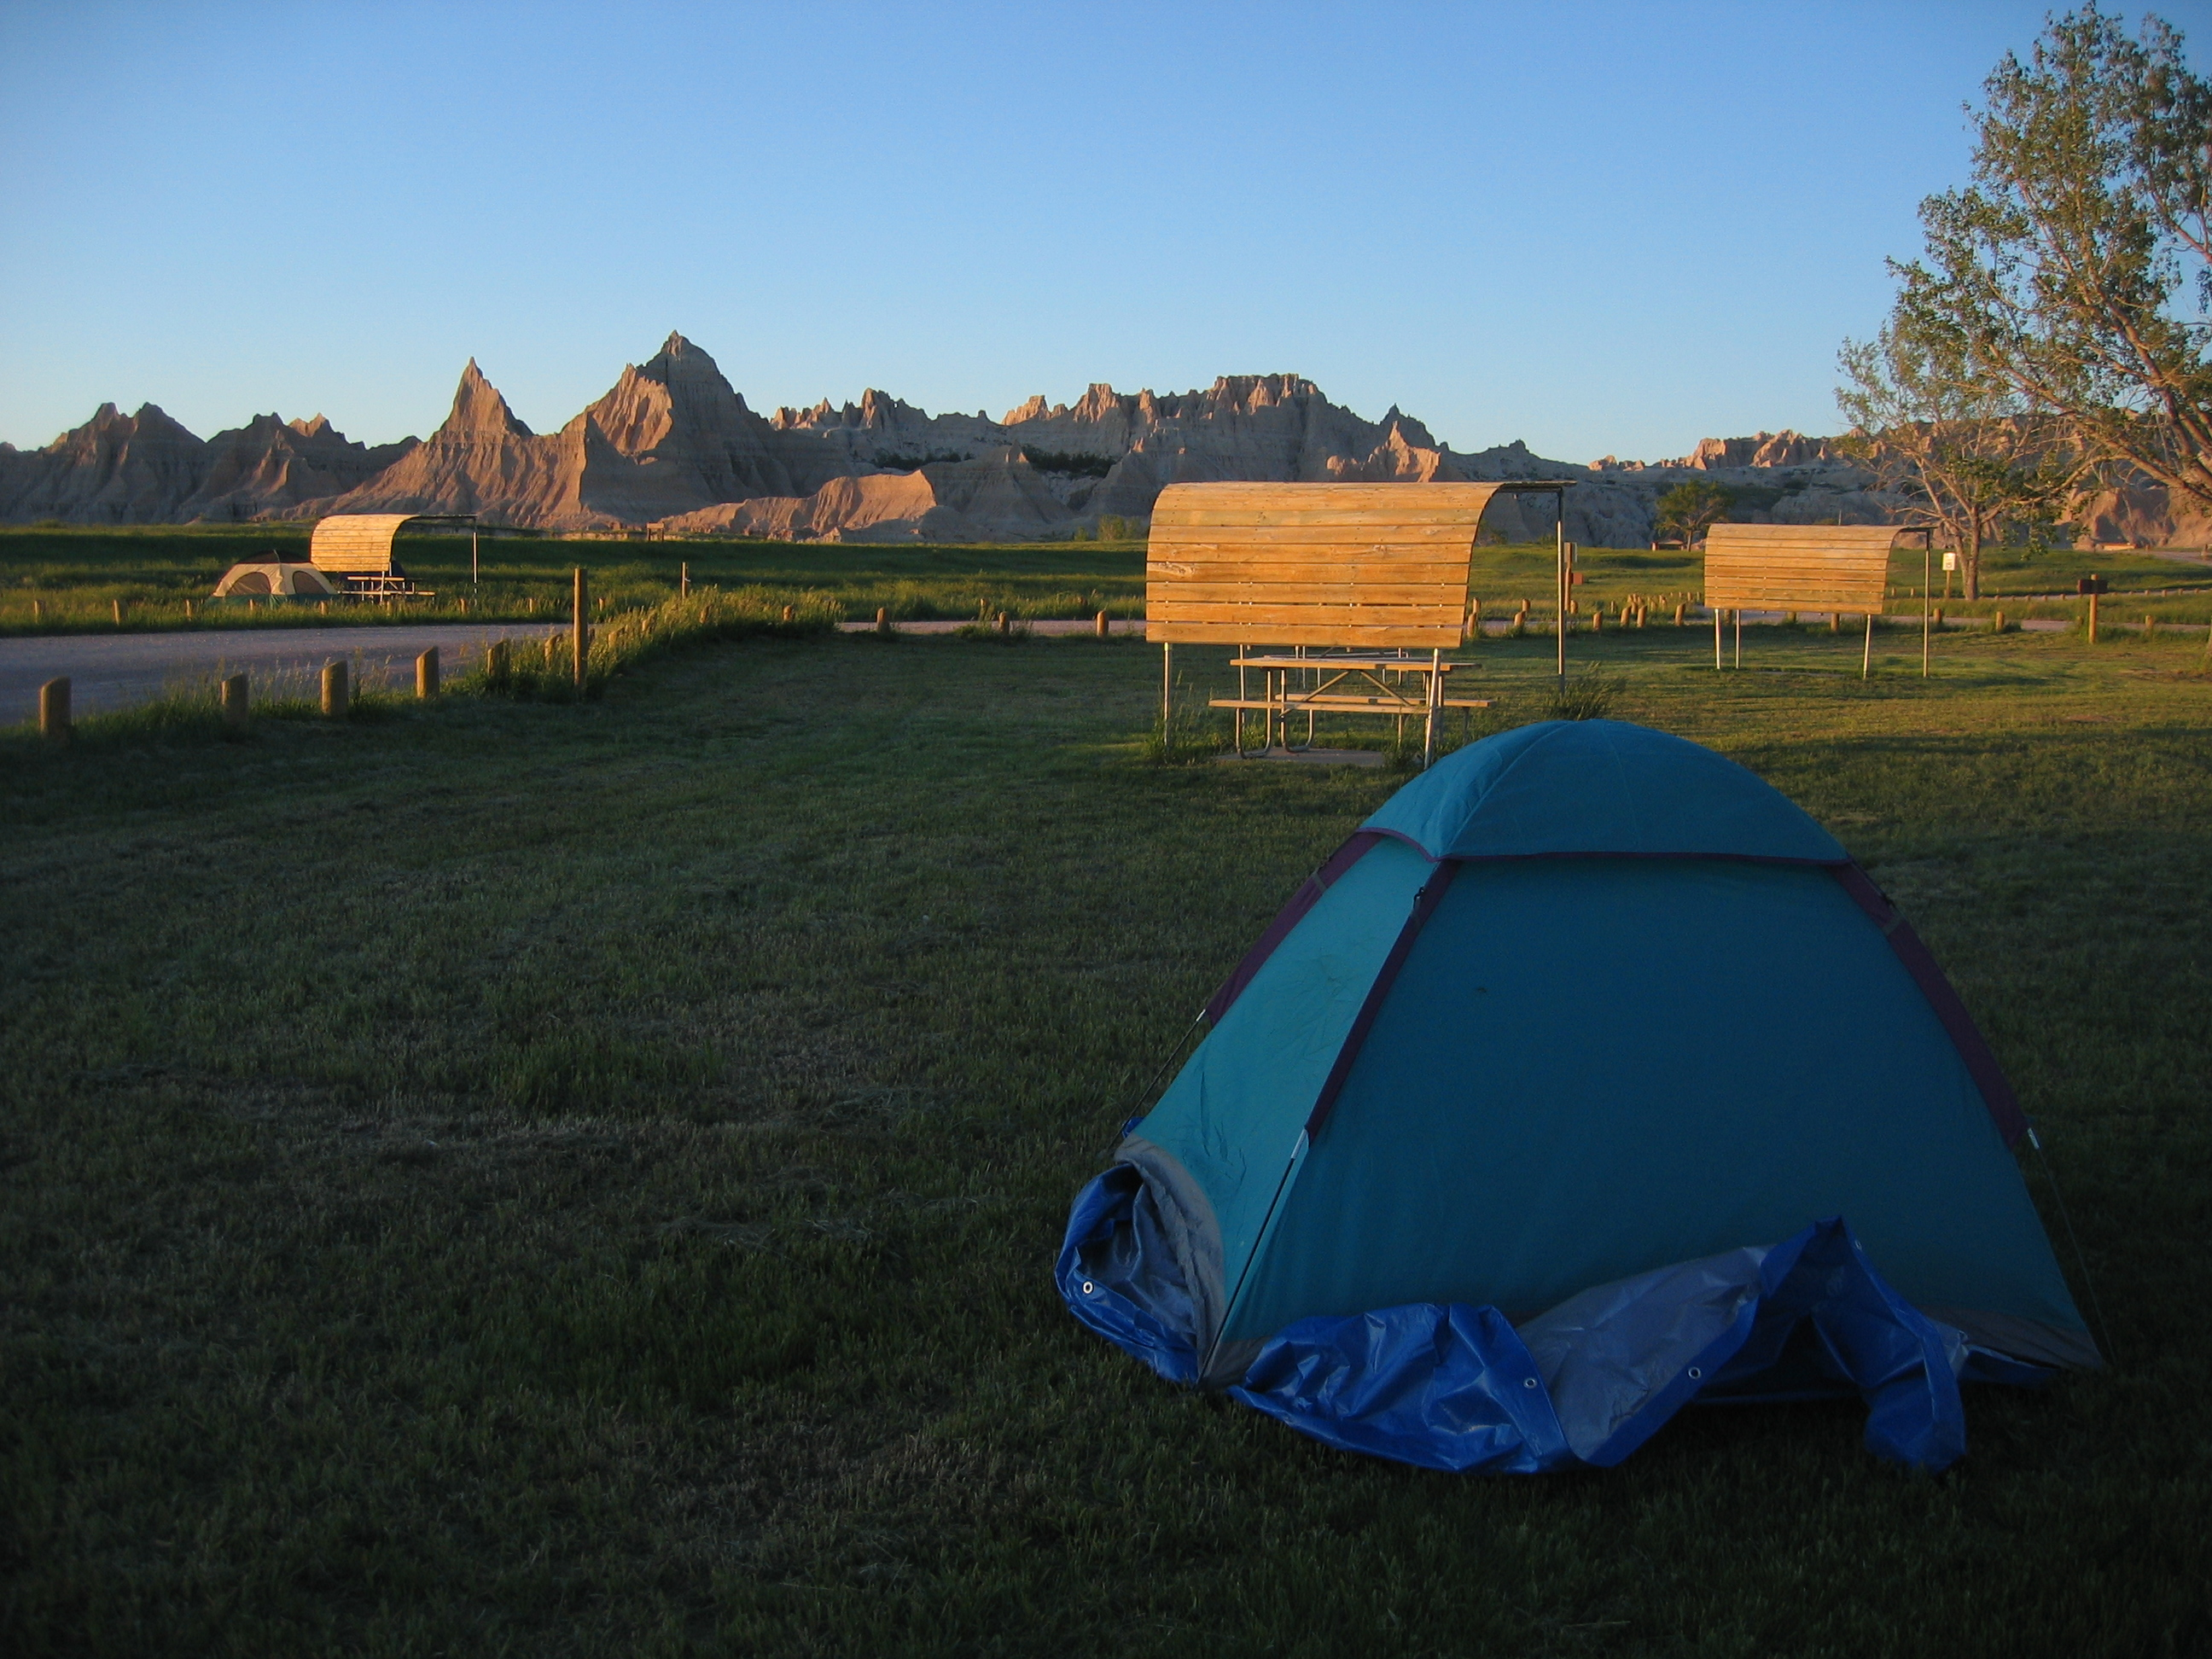 Tenting in Campground of Badlands South Dakota